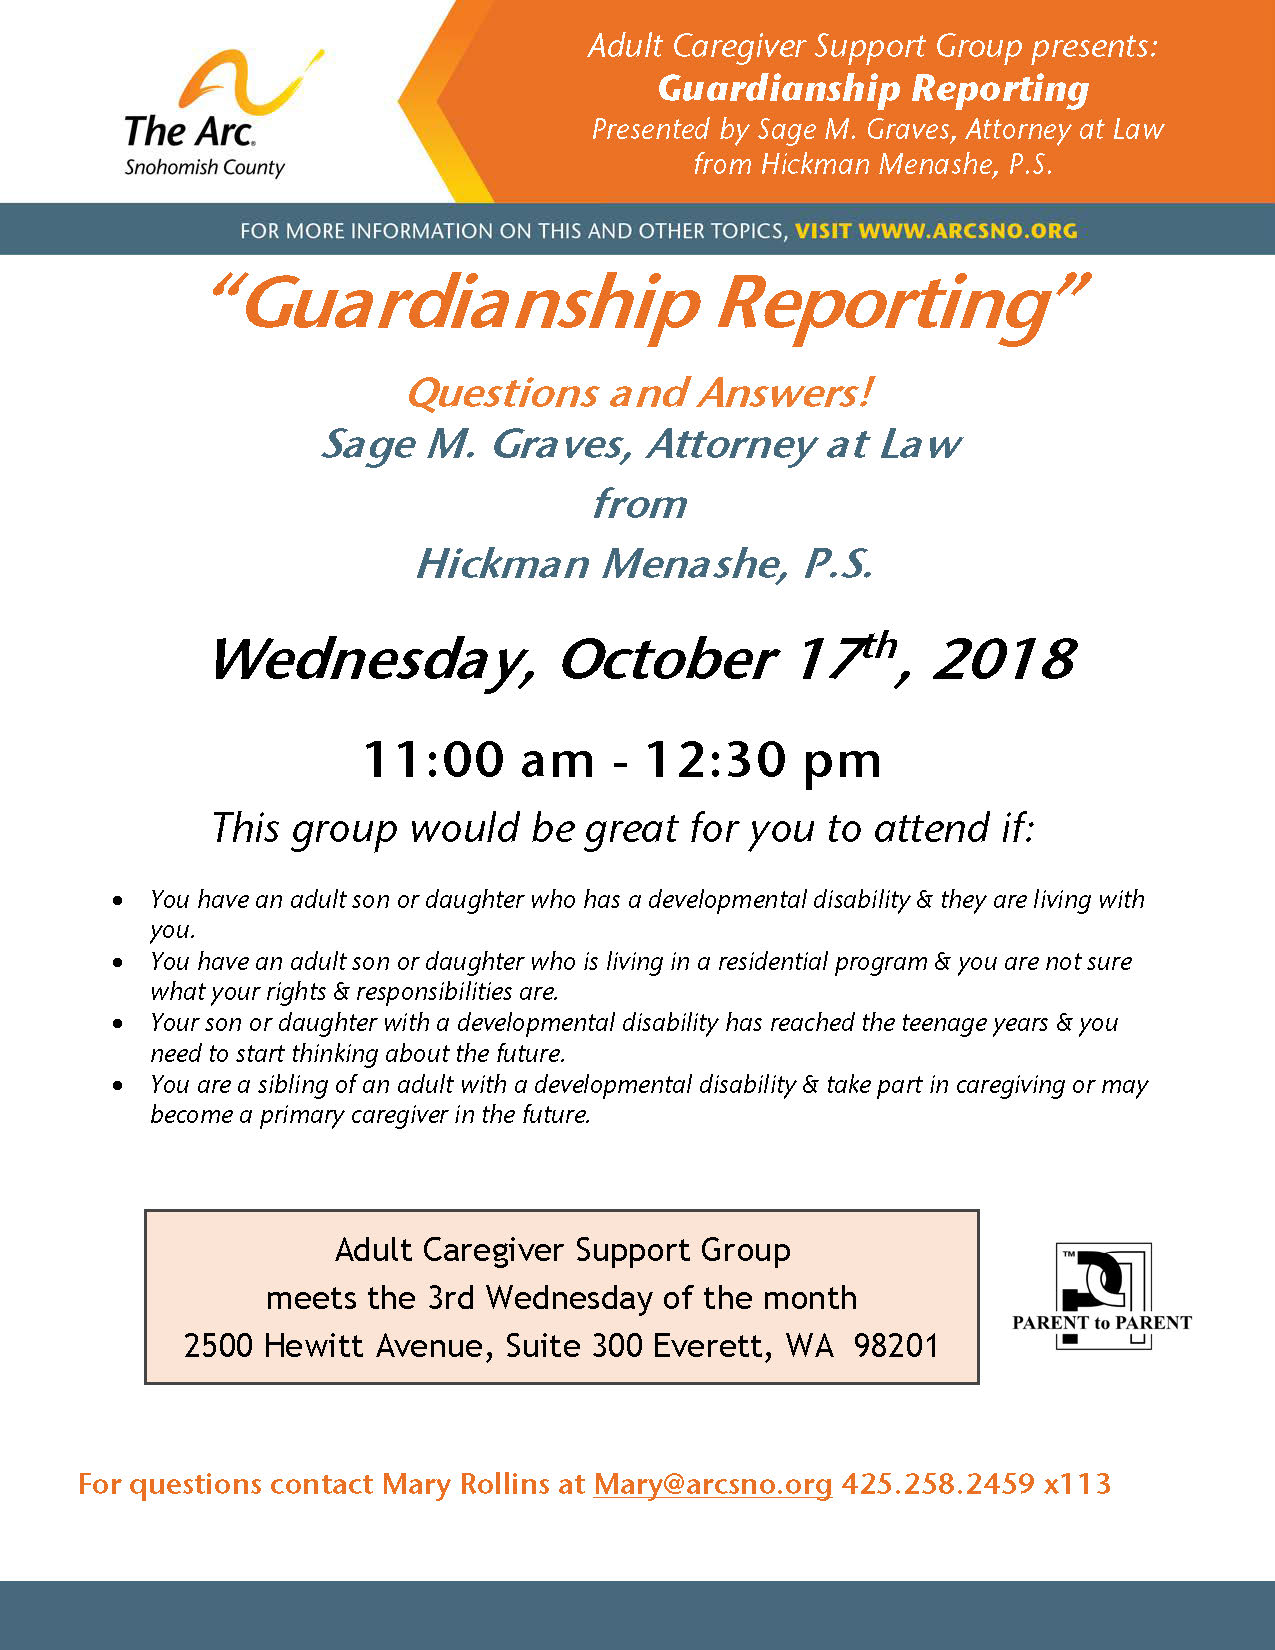 ACG Guardianship Reporting 2018 October